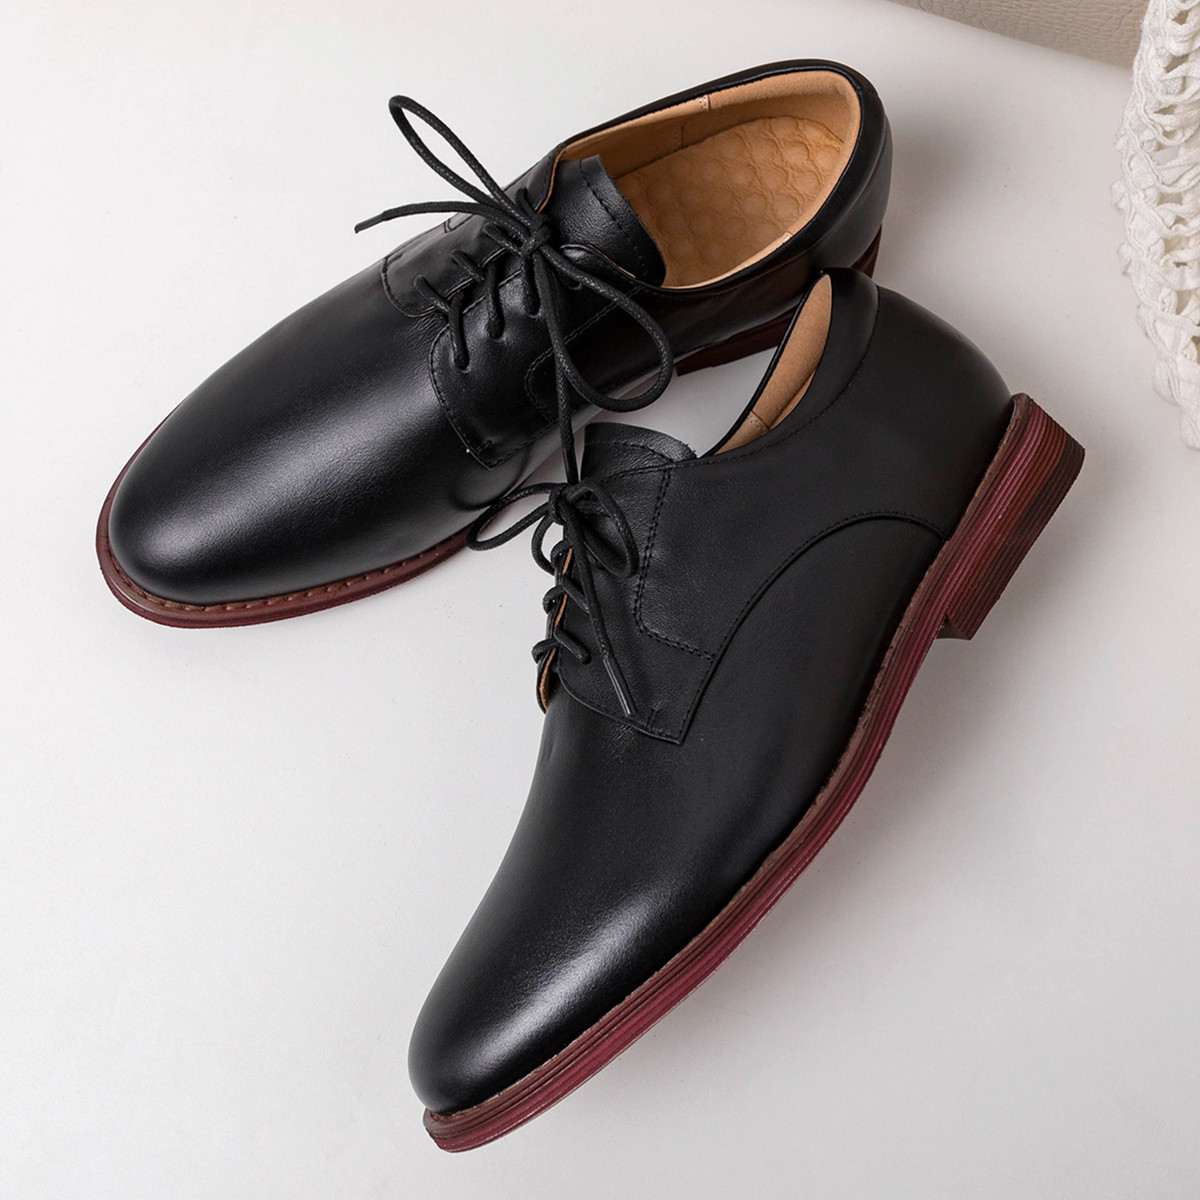 Women's genuine leather lace-up flats oxfords leisure soft comfortable female daily walk shoes high quality espadrilles shoes